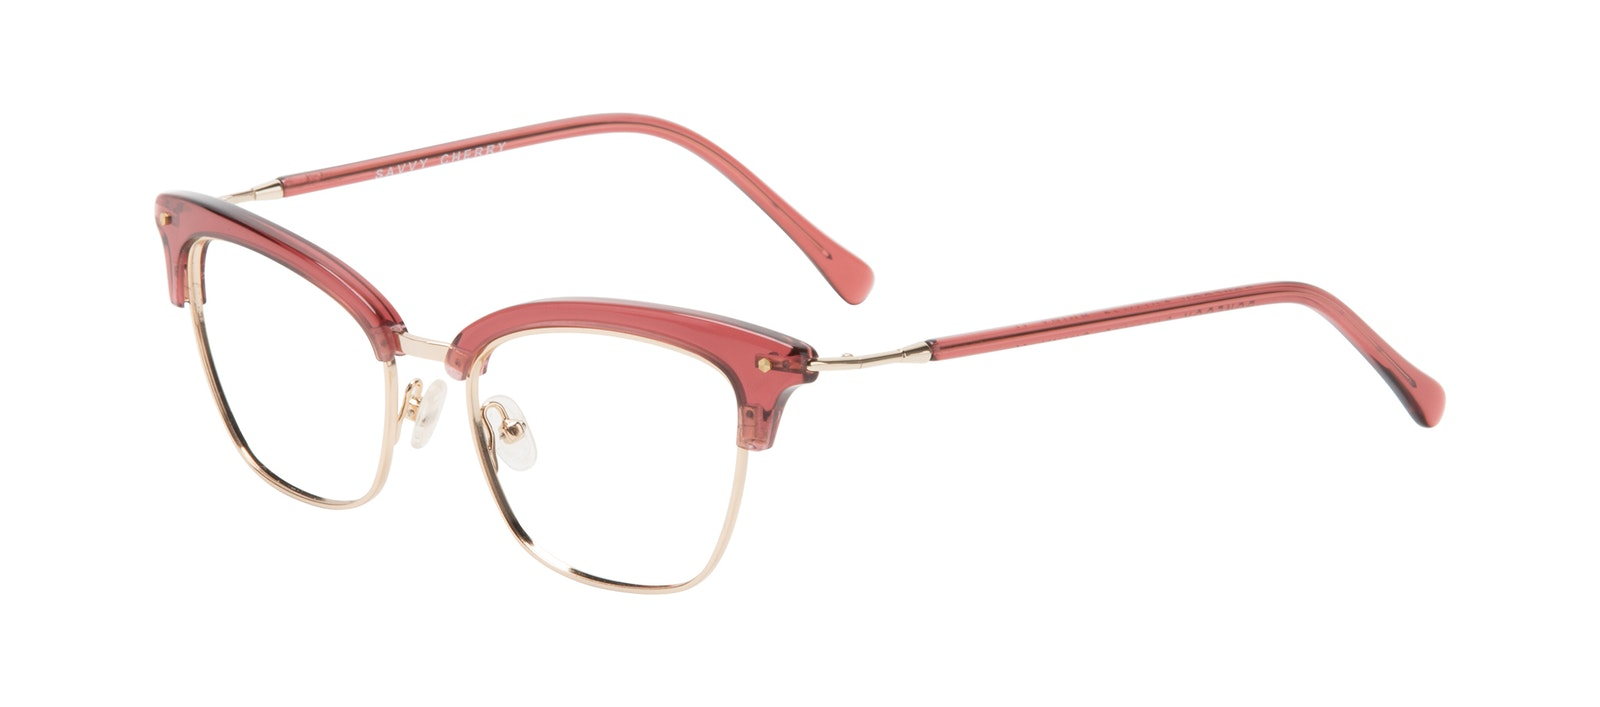 Affordable Fashion Glasses Cat Eye Eyeglasses Women Savvy Cherry Tilt